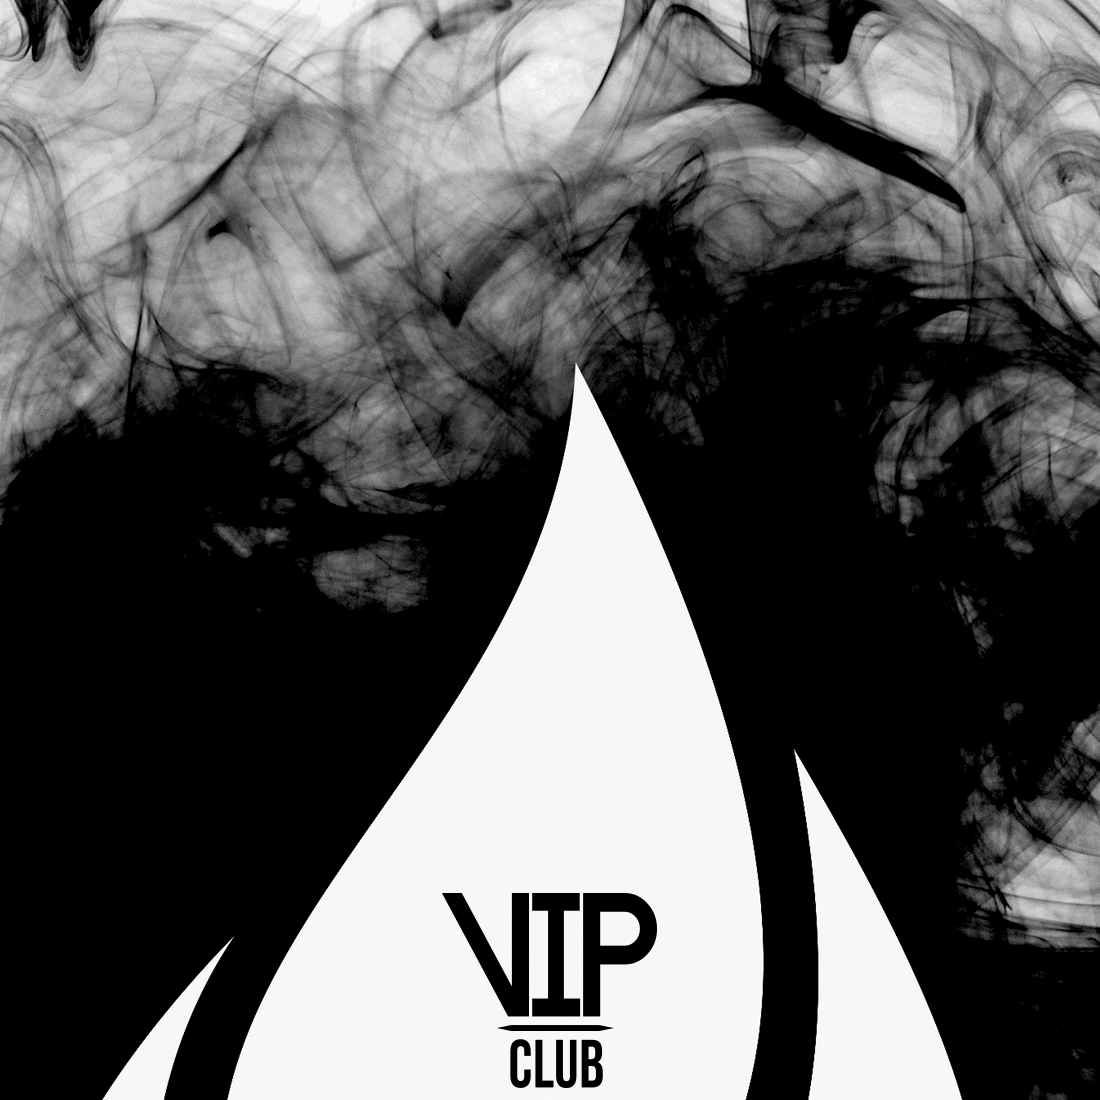 ABR VIP Boro Color Club